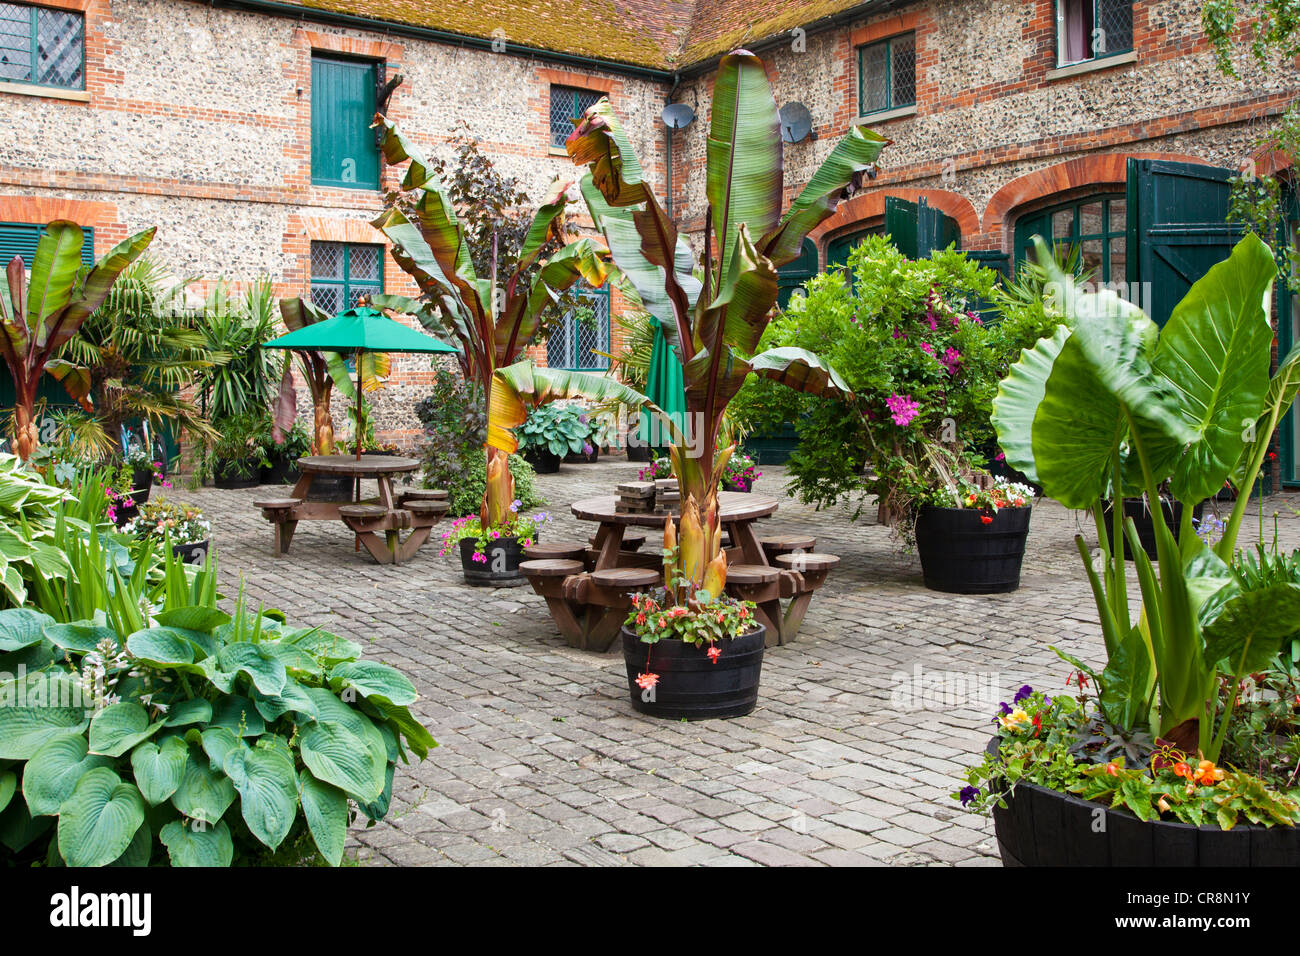 A Courtyard Garden With Containers Of Exotic Tropical Plants In